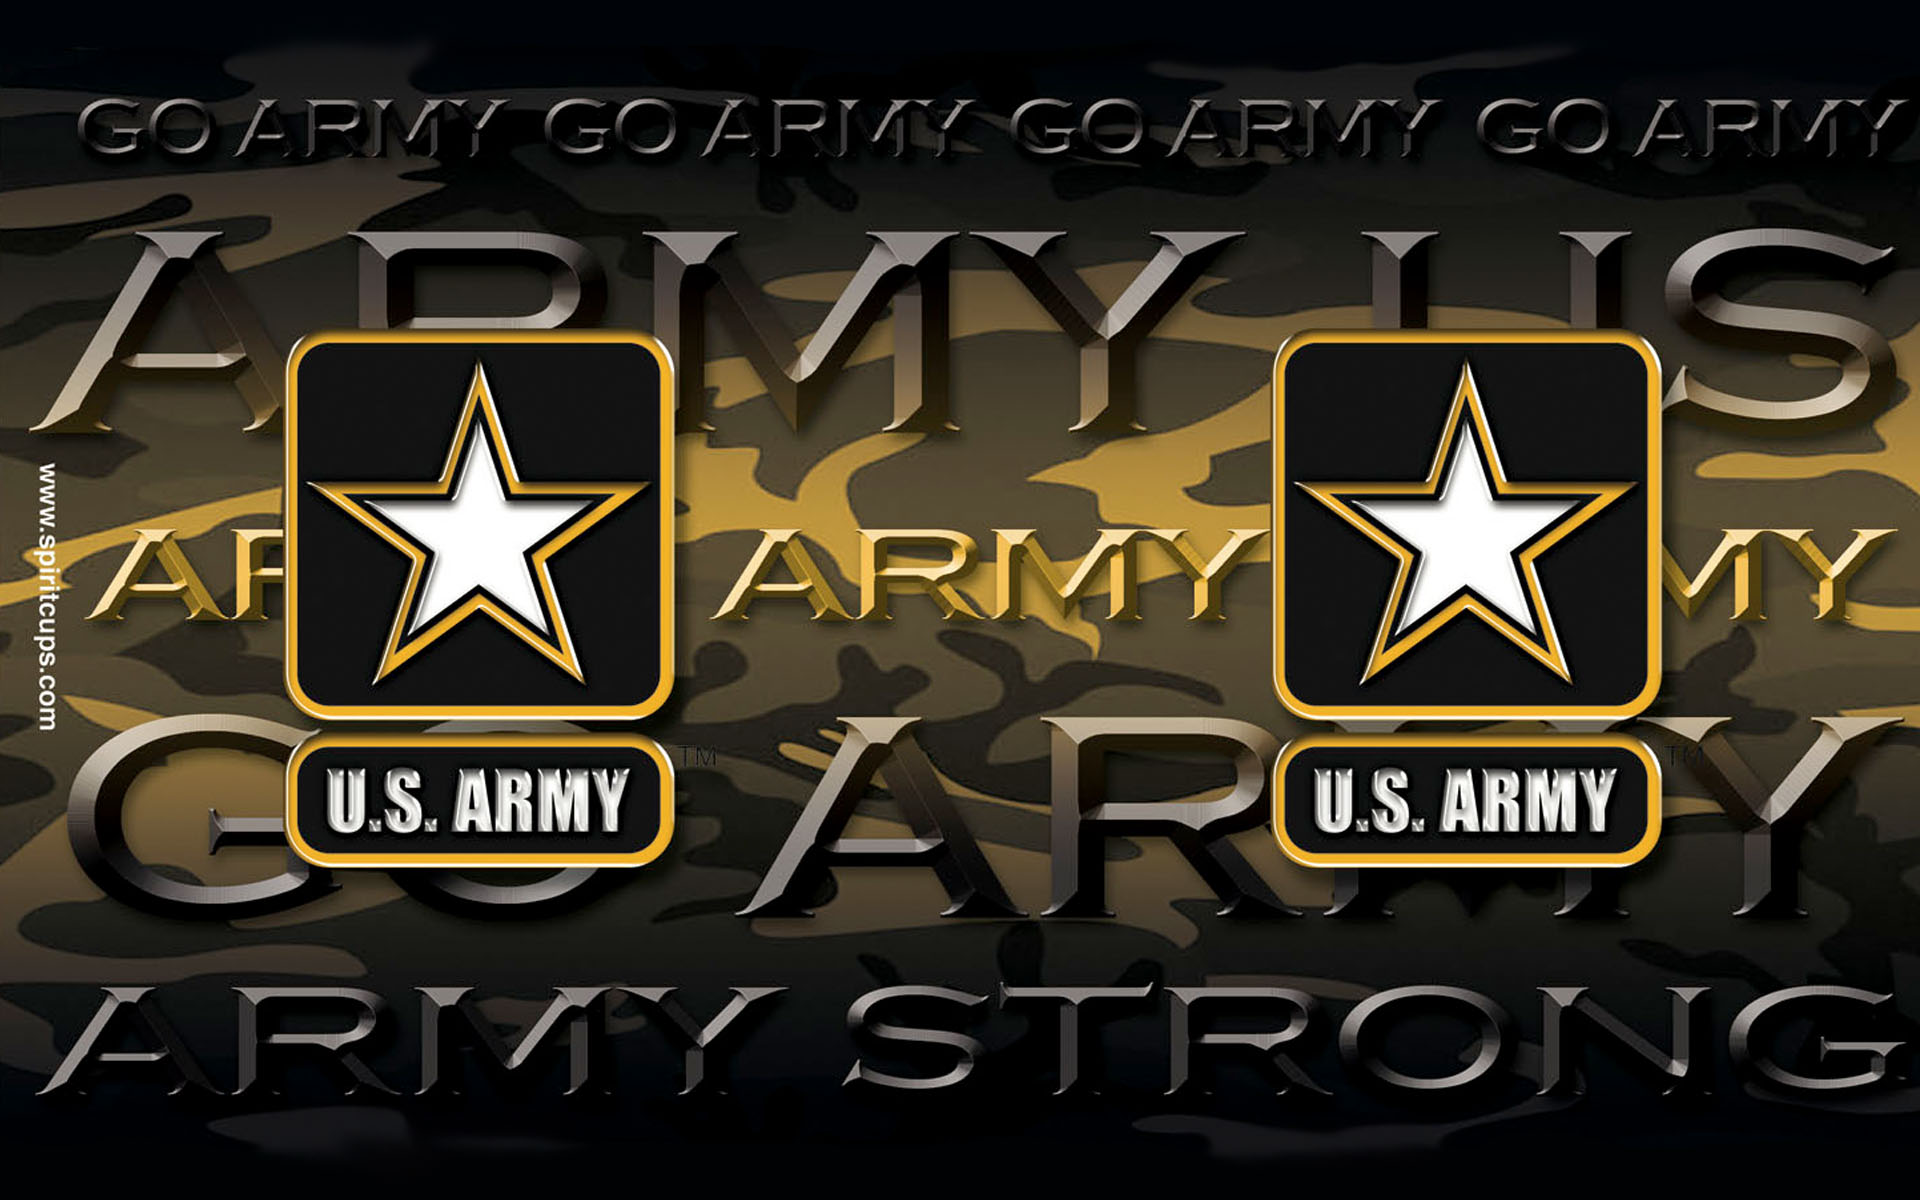 US Army Desktop Backgrounds Desktop Image 1920x1200